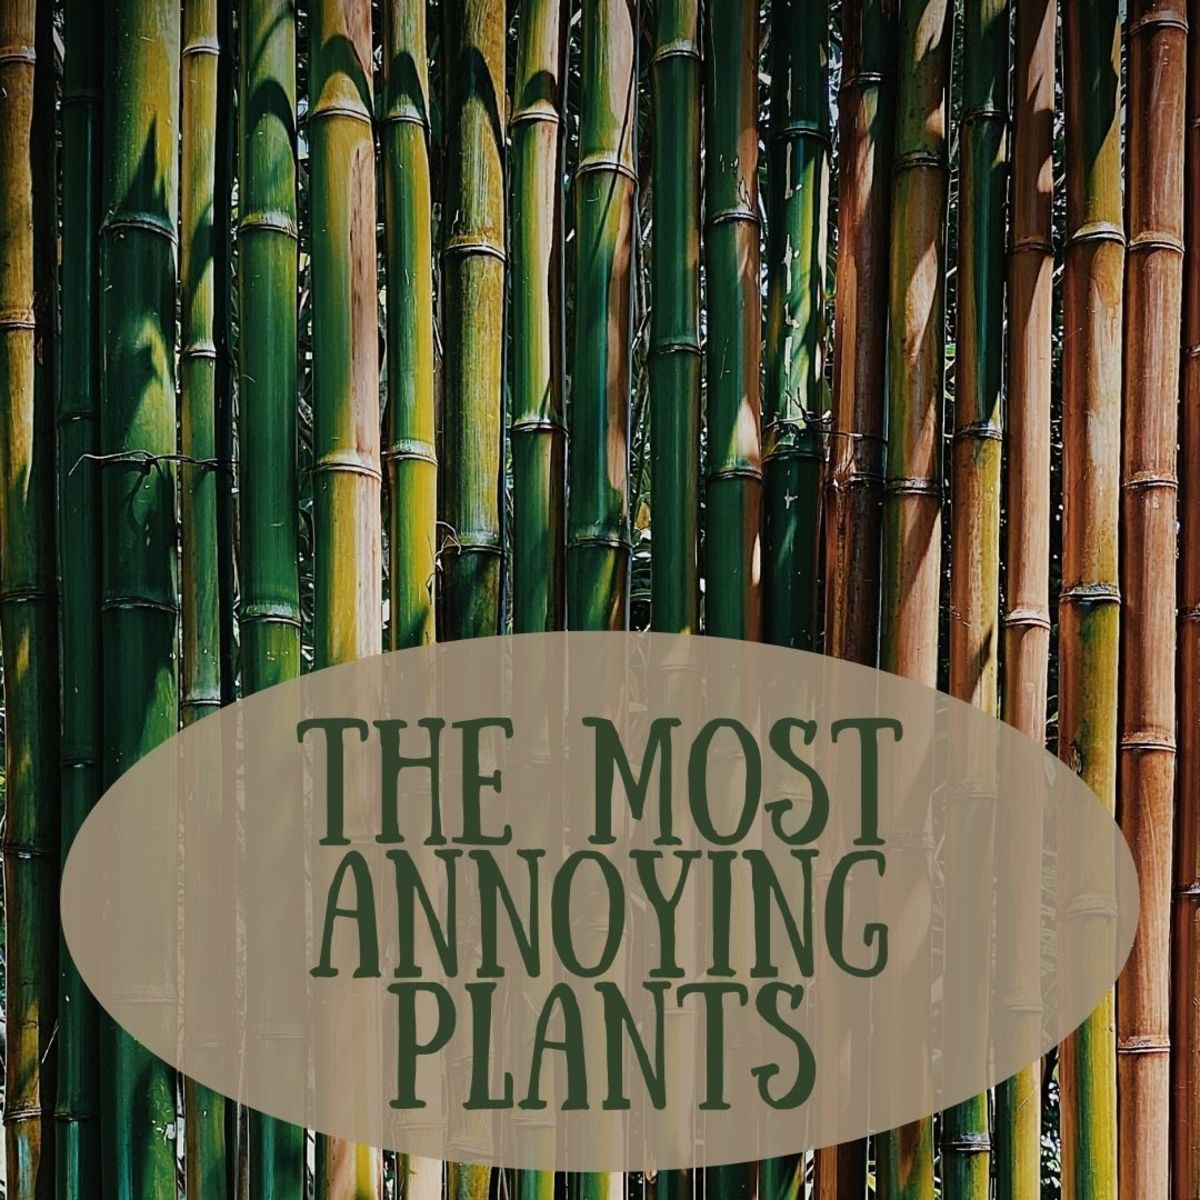 Ten Passive-Aggressive Plants to Give Your Enemy